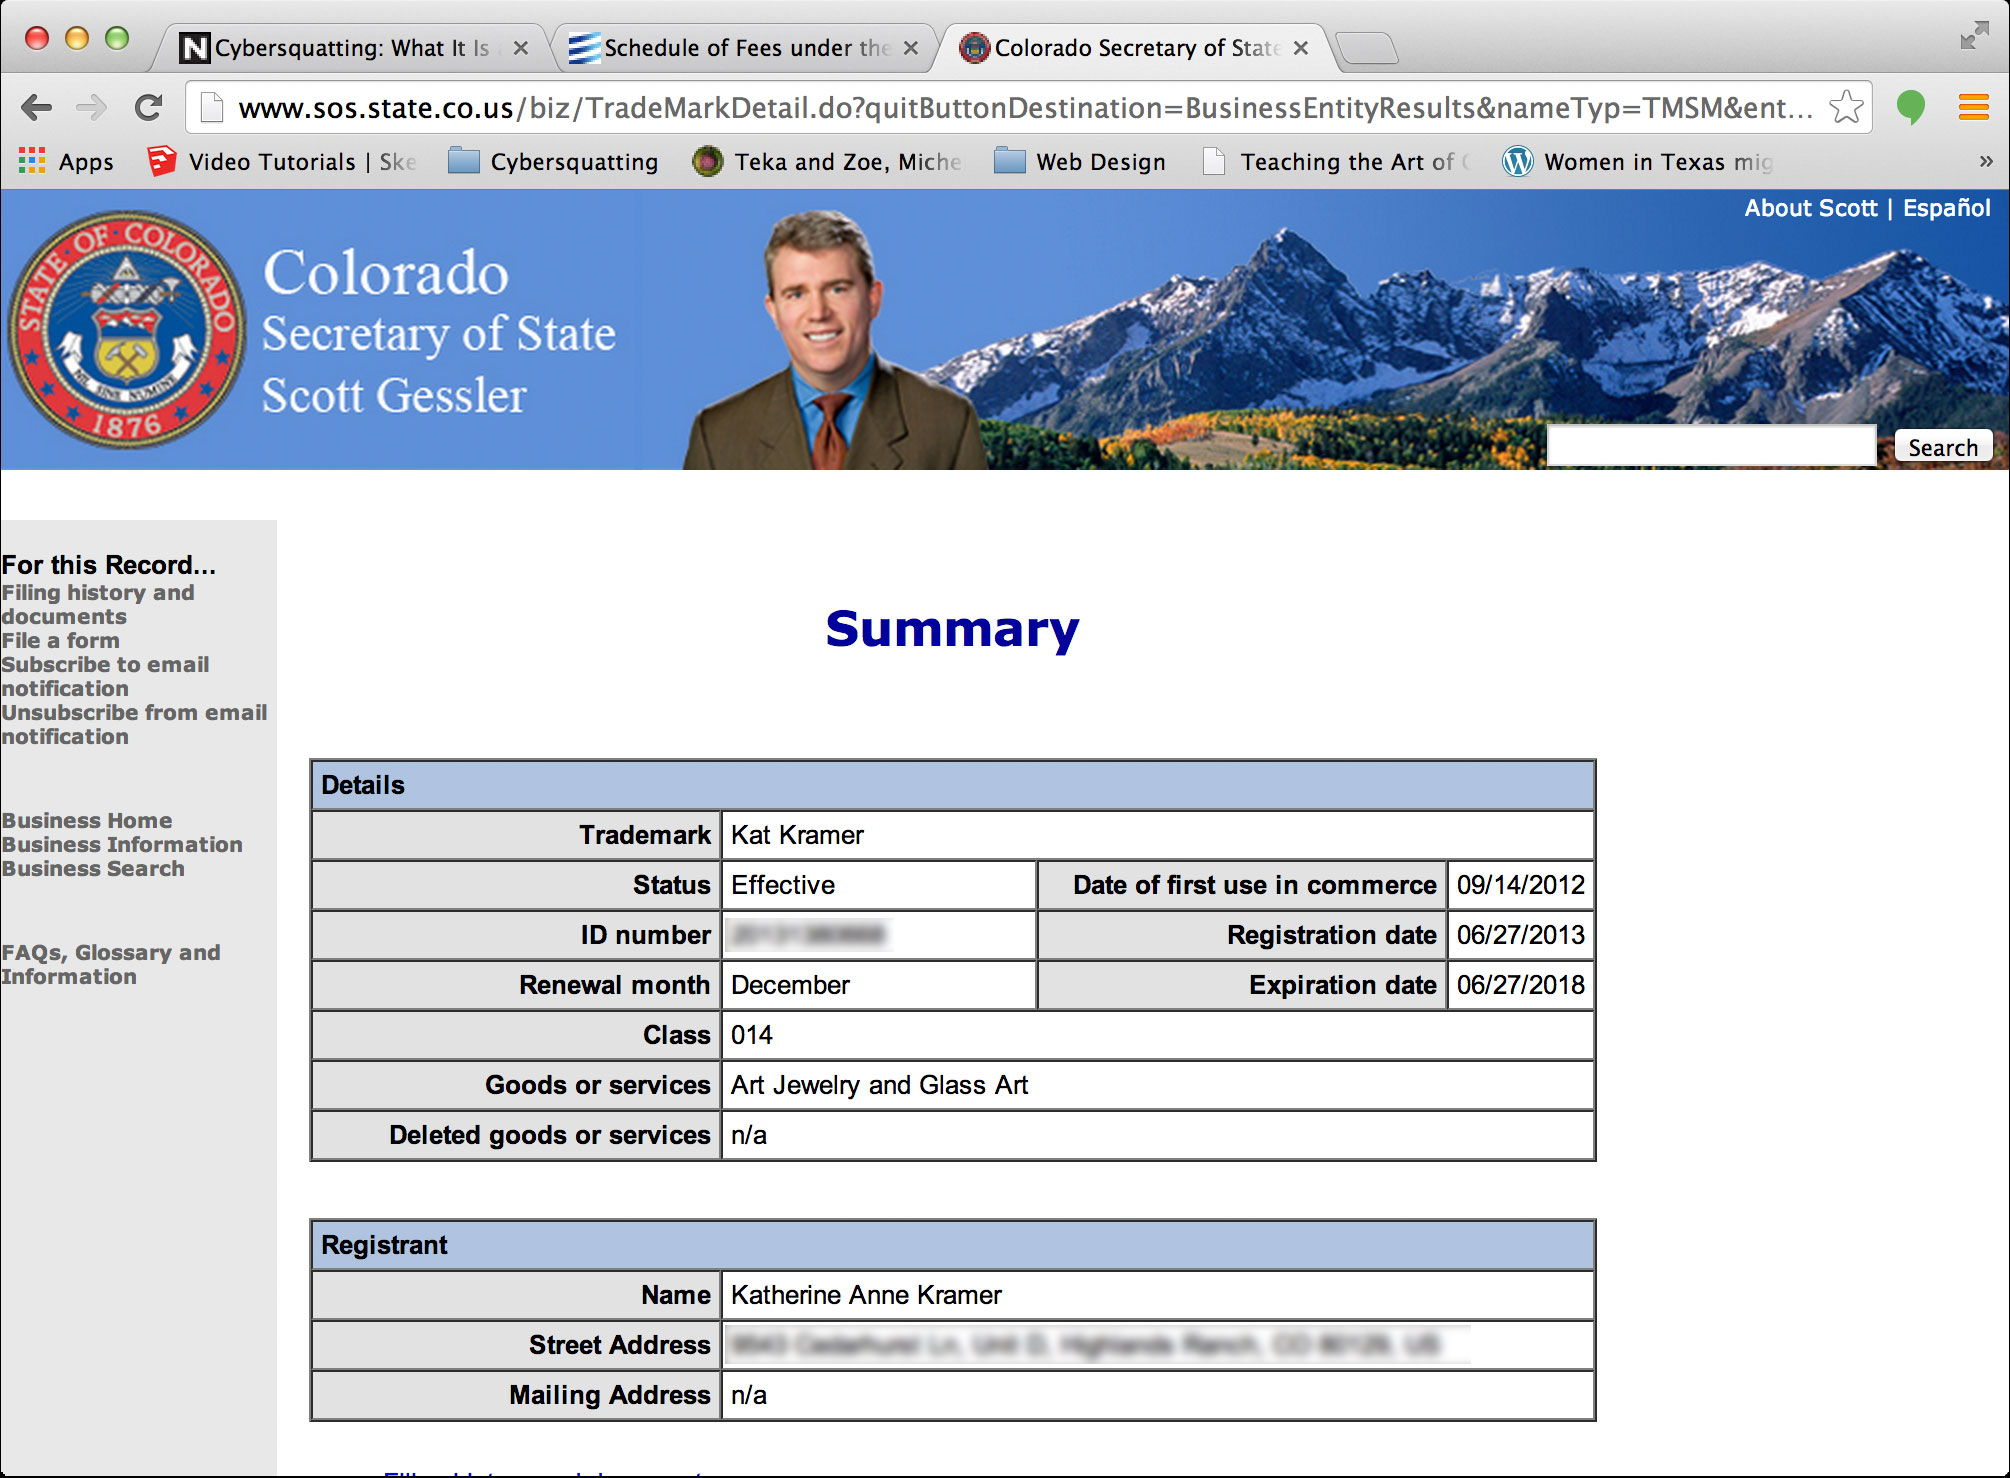 My trademark listed on the Colorado Secretary of State website